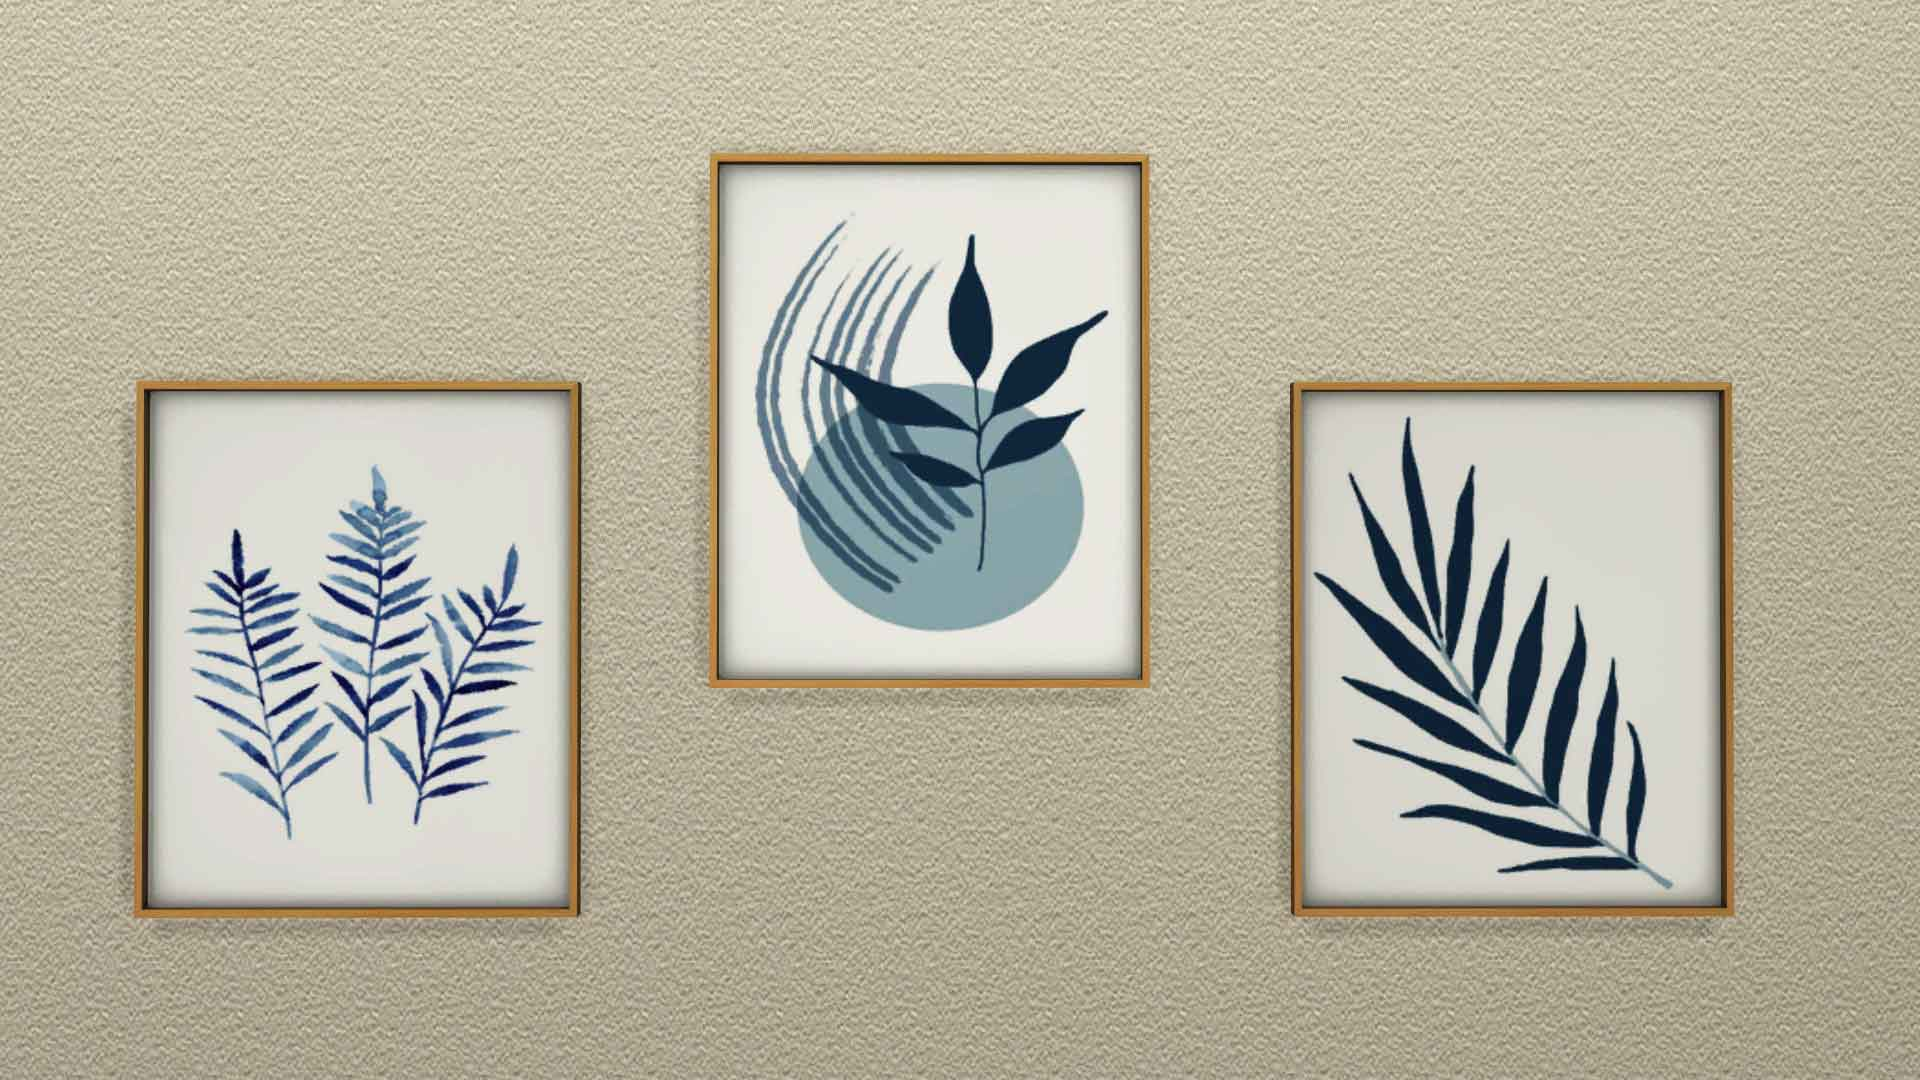 Blue Plant Paintings, high quality sims 4 cc, sunkissedlilacs, free sims 4 decor, sims 4 custom content,